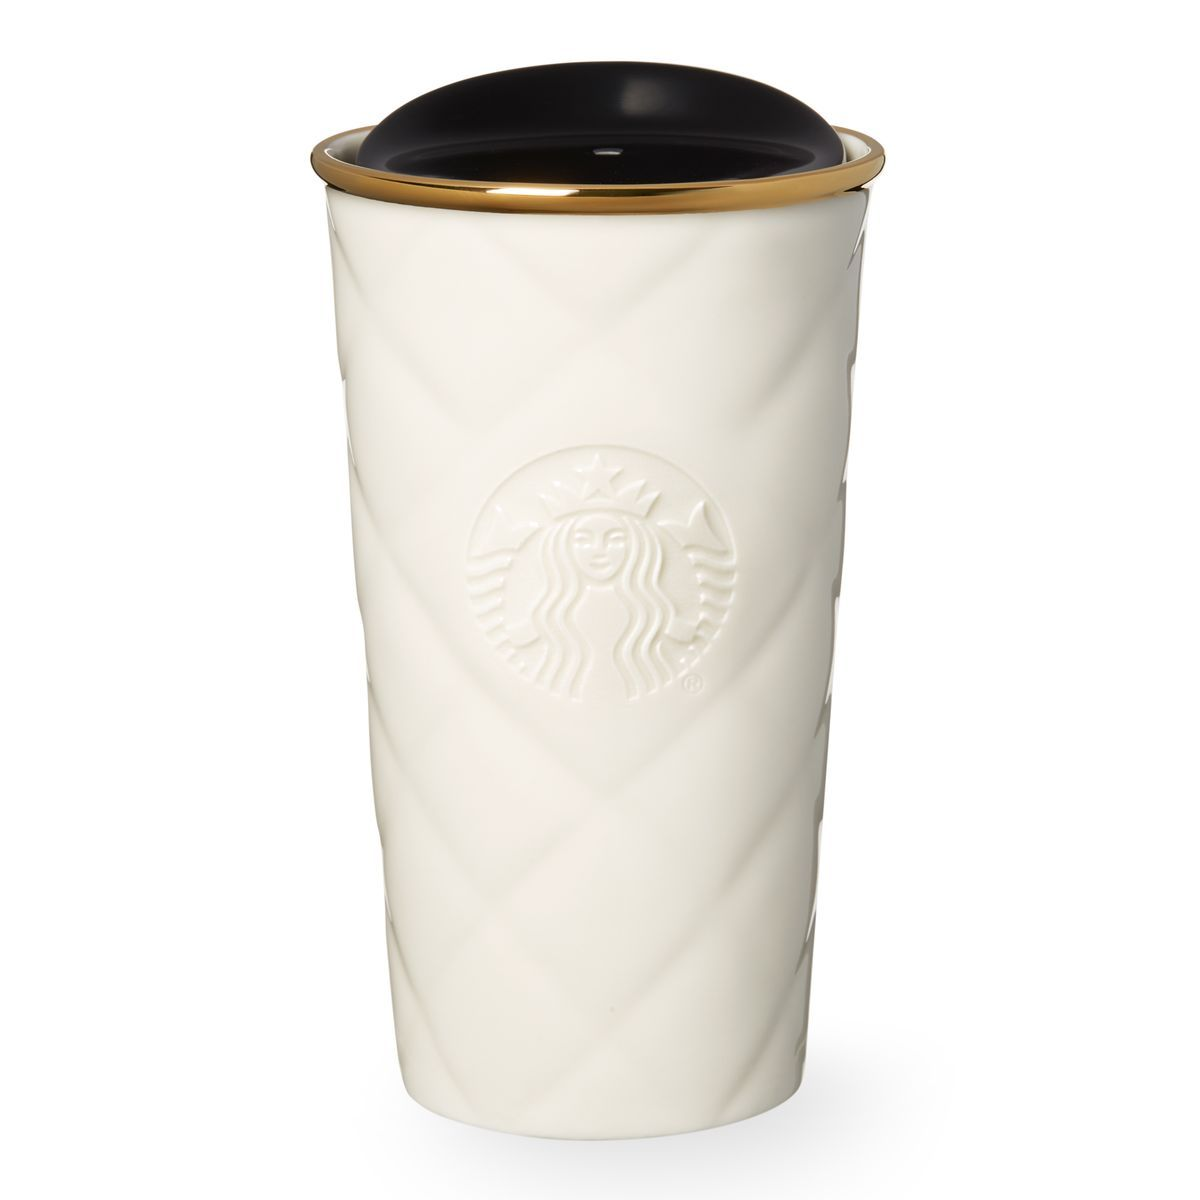 A Double Walled Ceramic Travel Mug With Smooth Quilted Texture And Metallic Gold Lid Part Of The Brilliant Collection